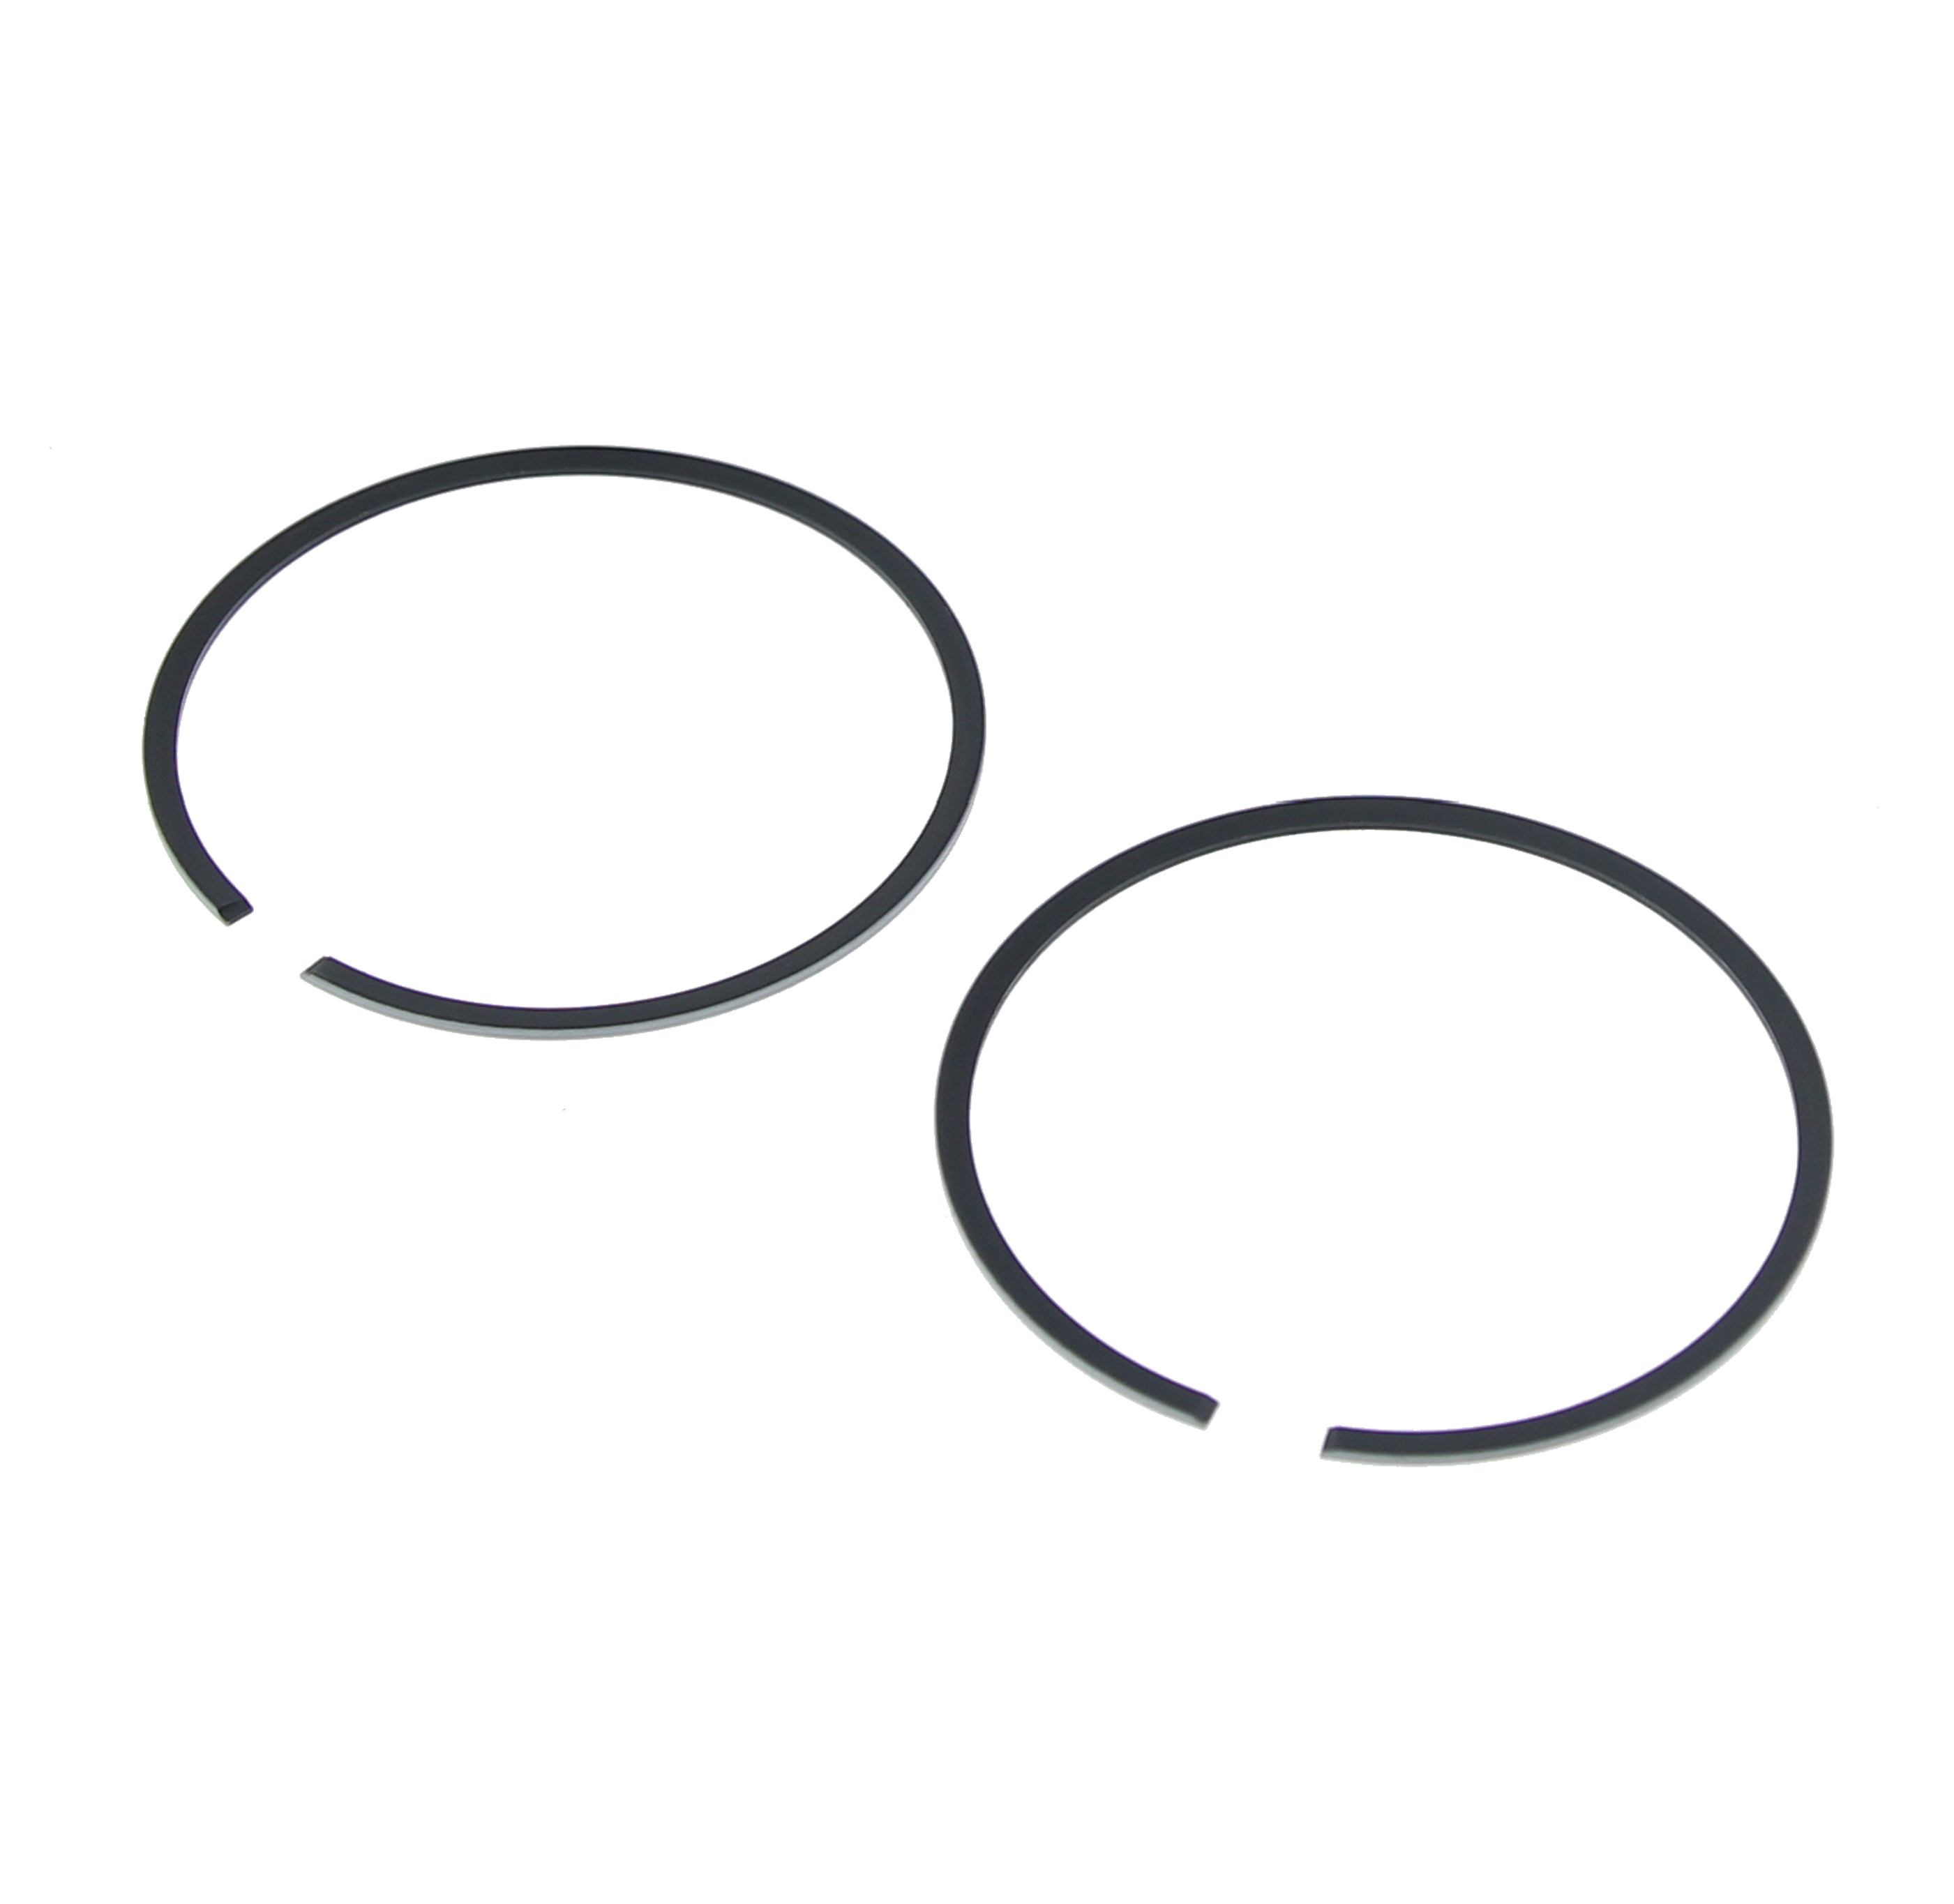 1989 1990 1993-2000 fits Yamaha Ovation CS340 Piston Rings